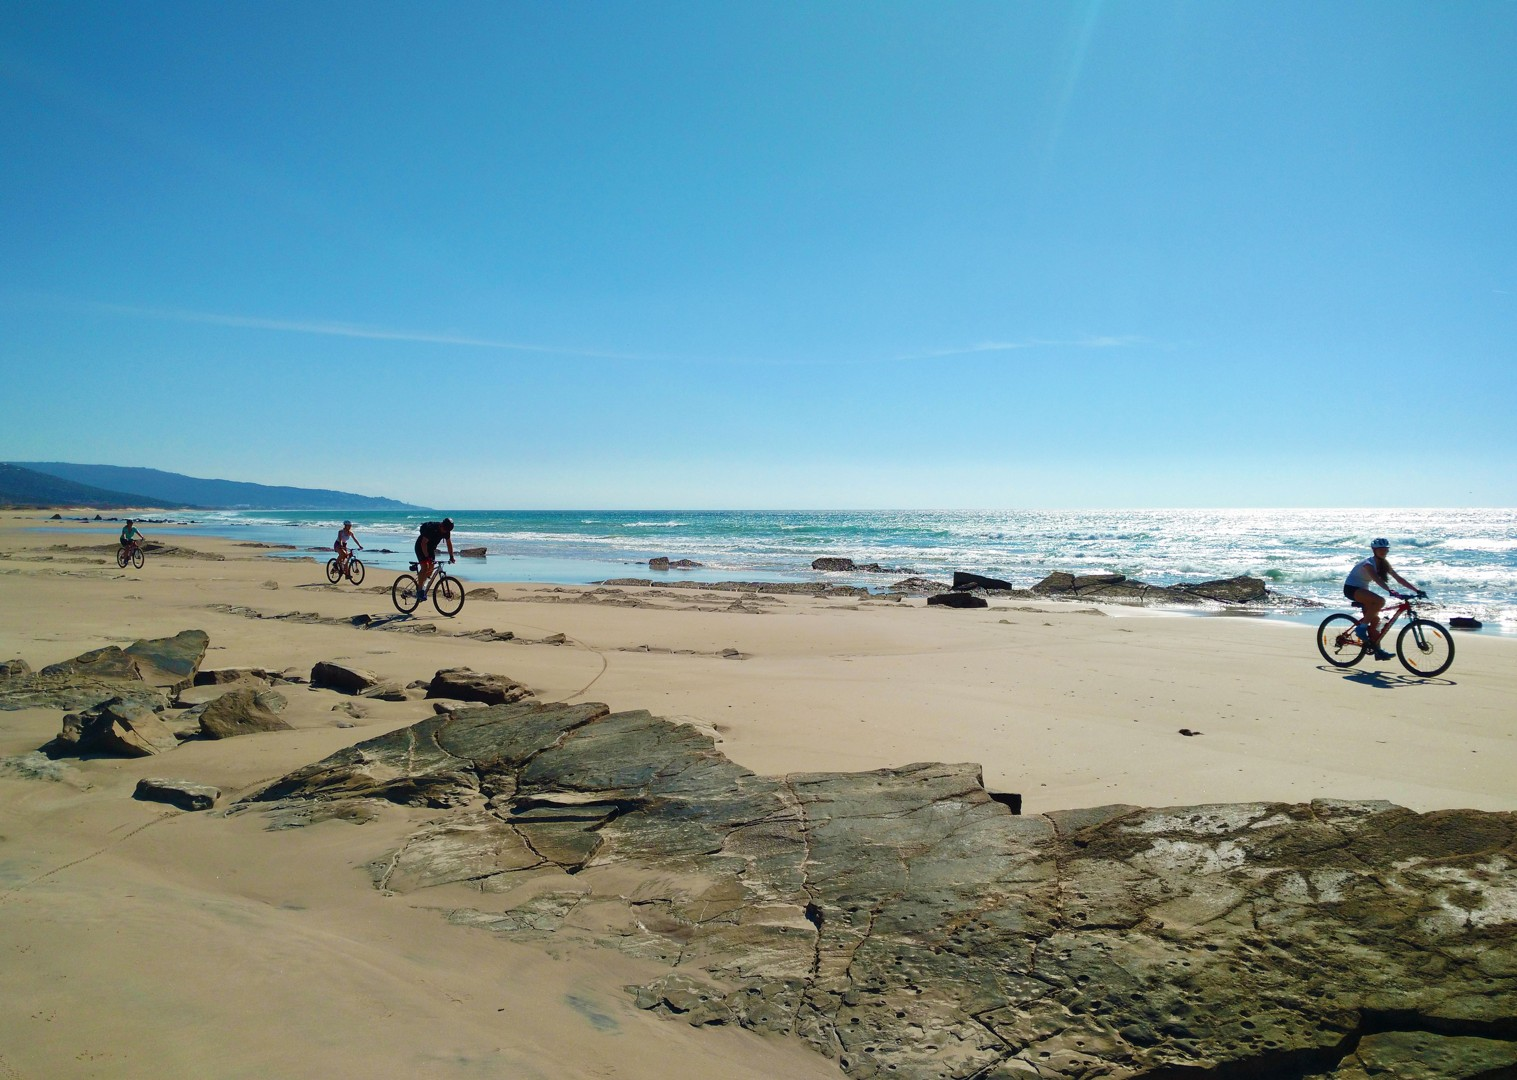 IMG_20171025_141322022.jpg - Southern Spain - Coastal Adventurer - Self-Guided Family Cycling Holiday - Family Cycling